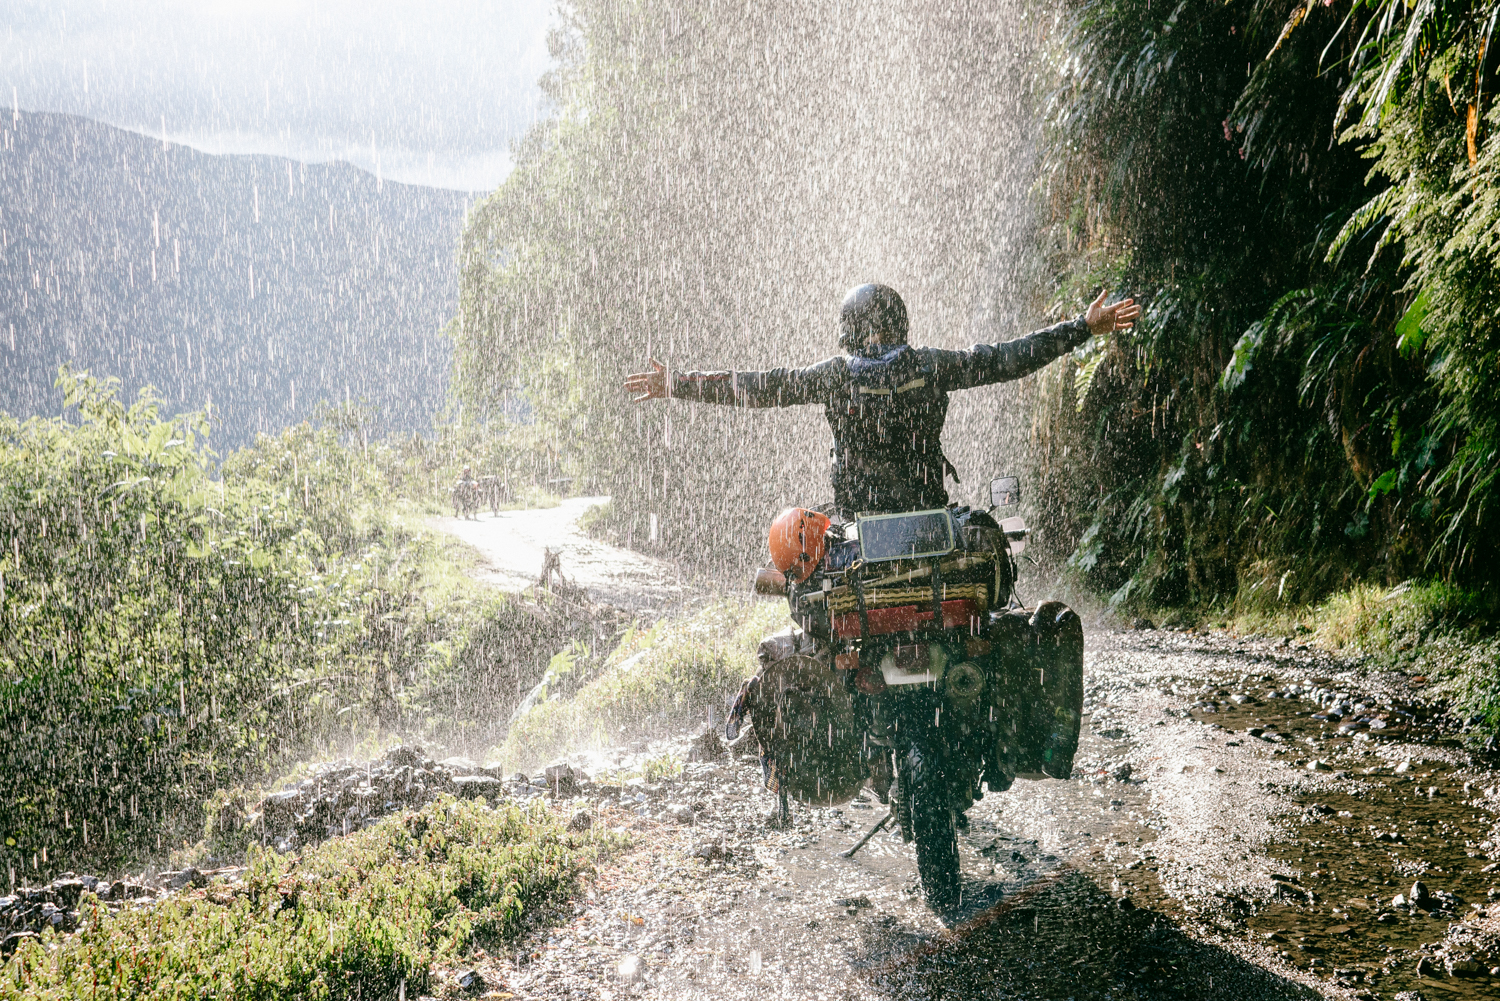 Motorcycle under a waterfall